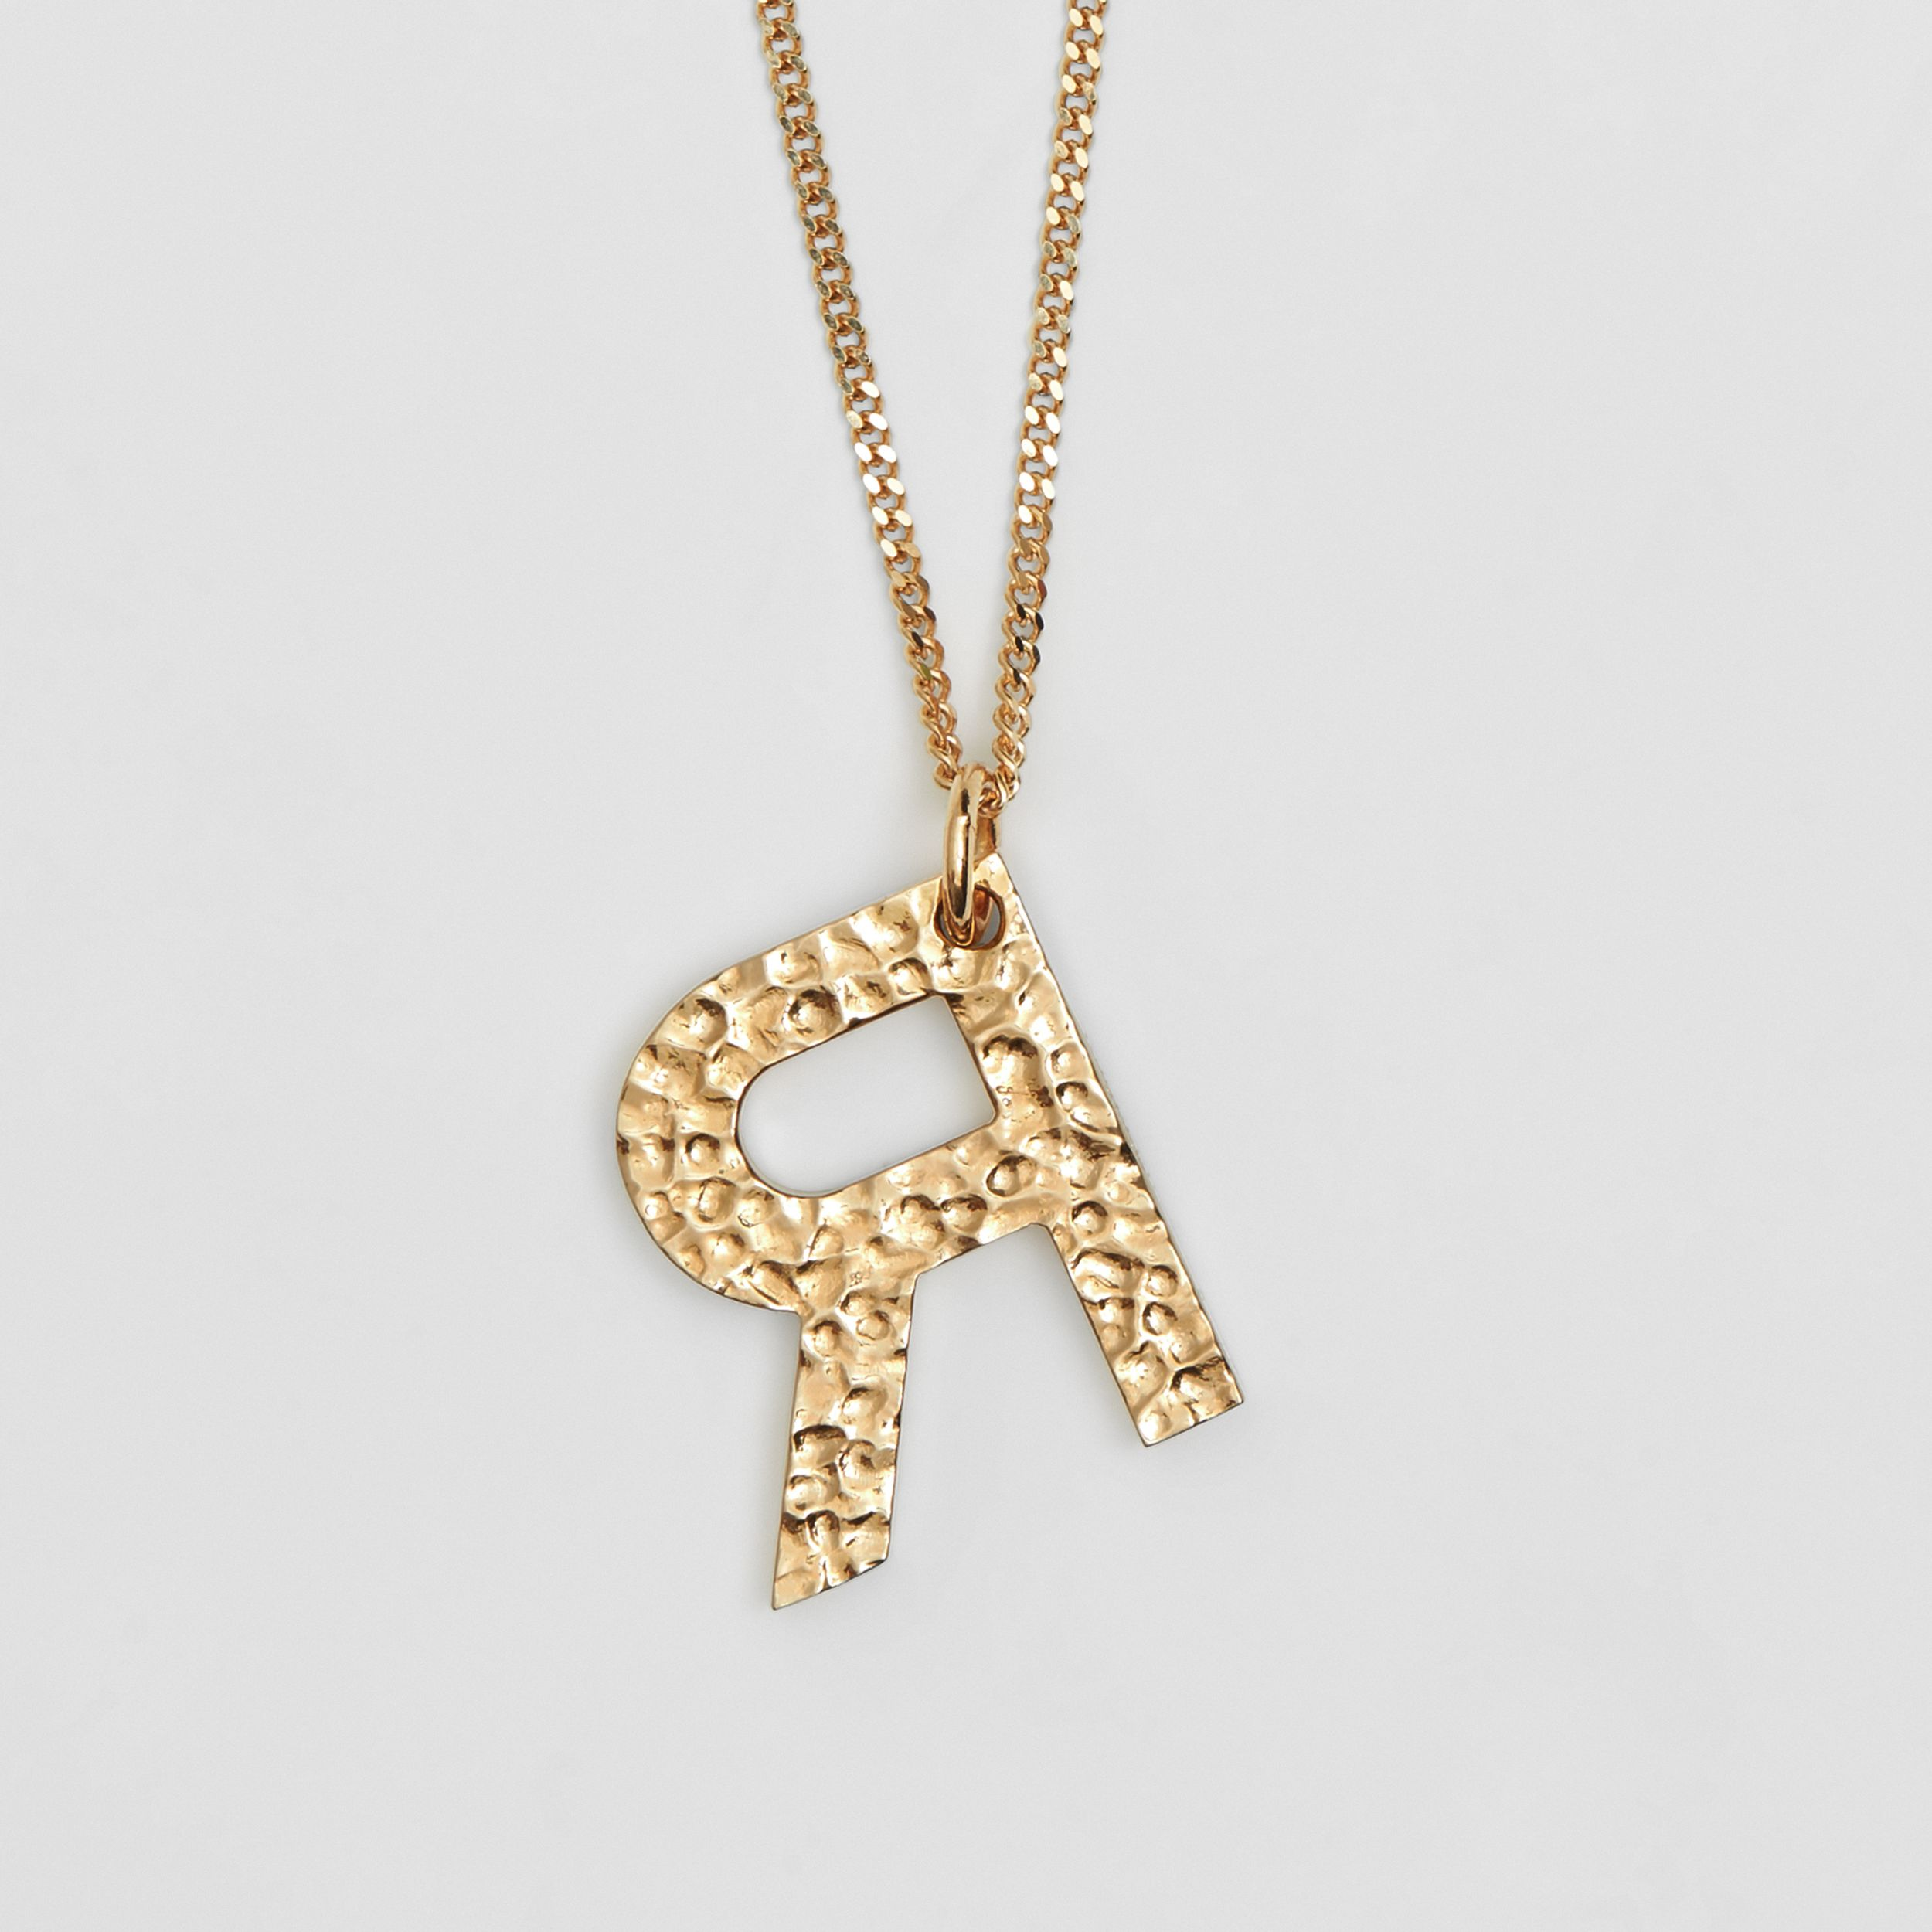 'R' Alphabet Charm Gold-plated Necklace in Light - Women | Burberry - 4